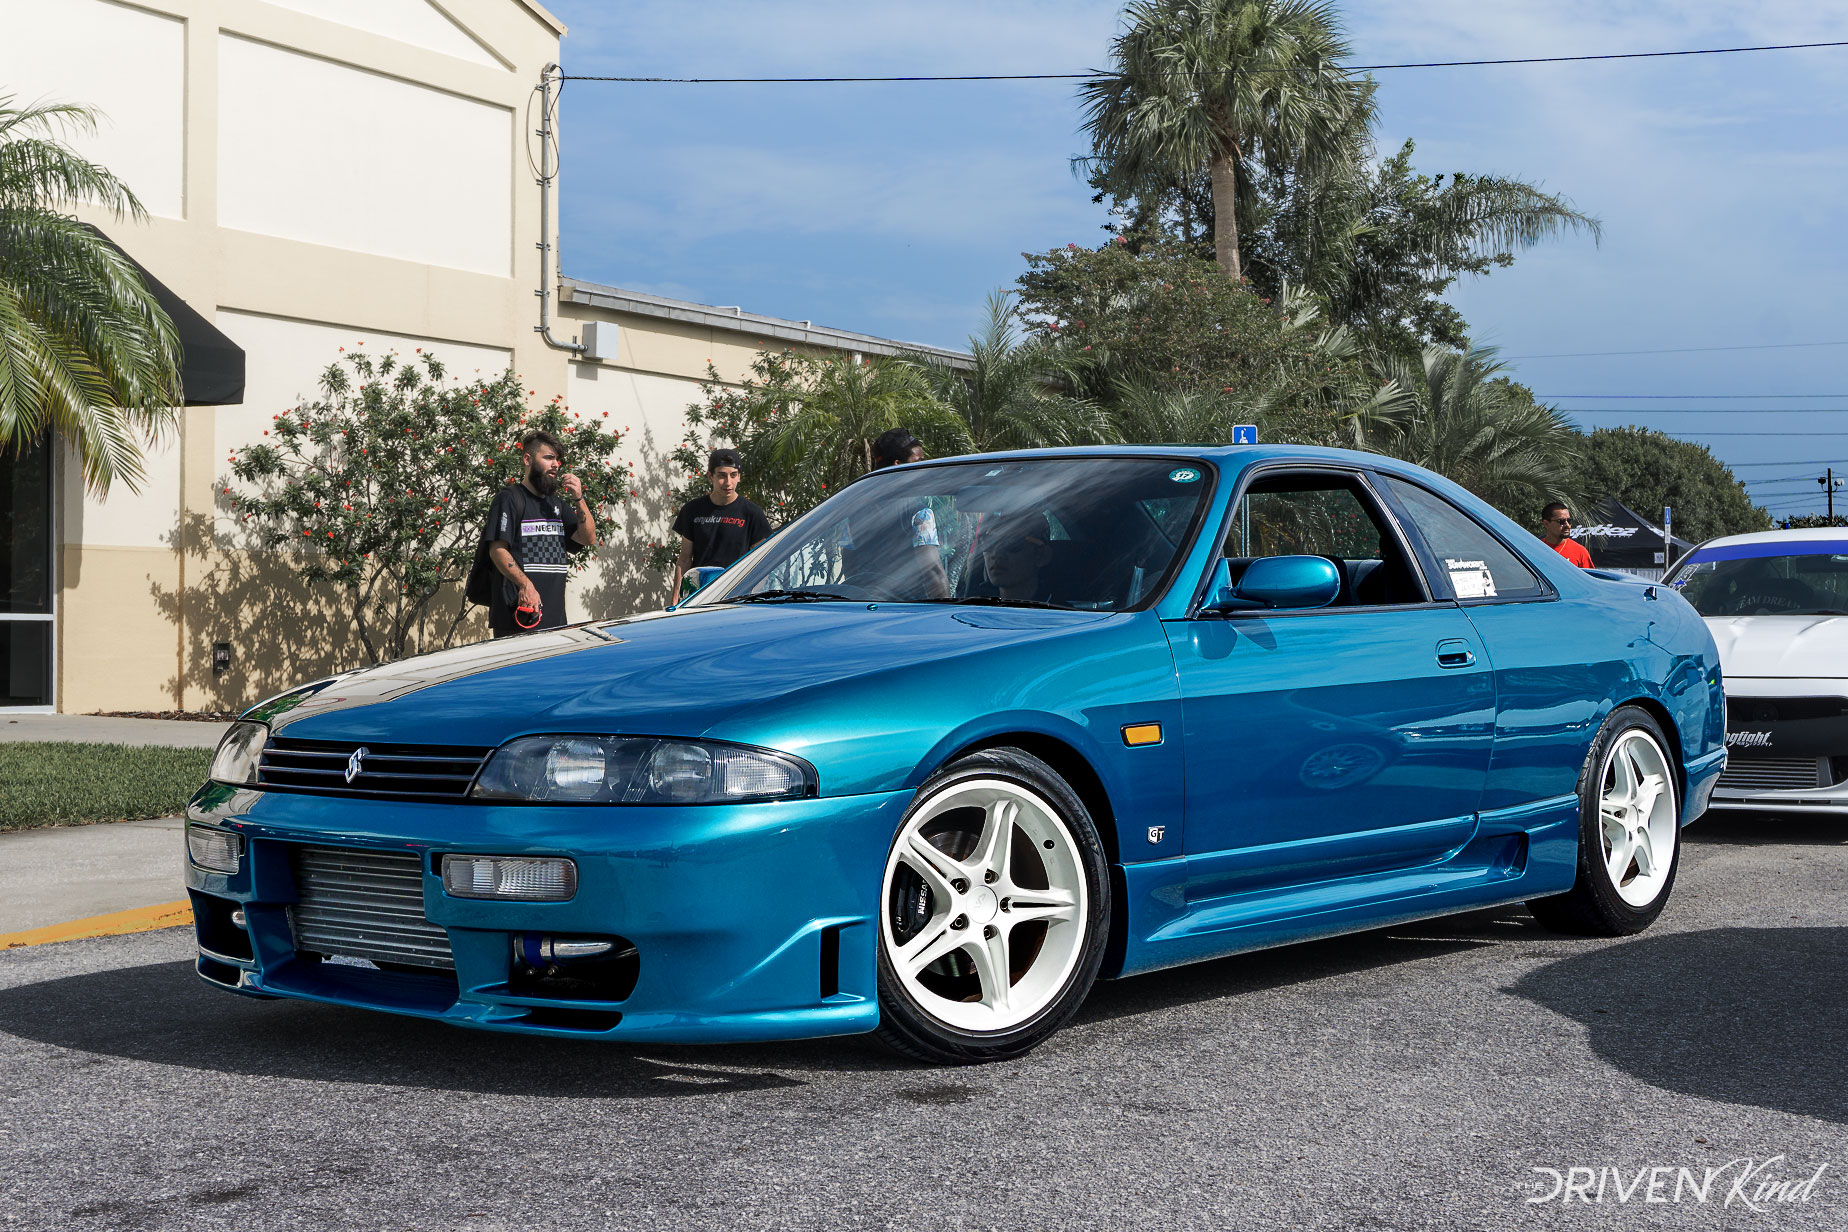 Nissan Skyline Daily Driven Inc. Presents Florida's Finest Melbourne FL Auditorium coverage by The Driven Kind